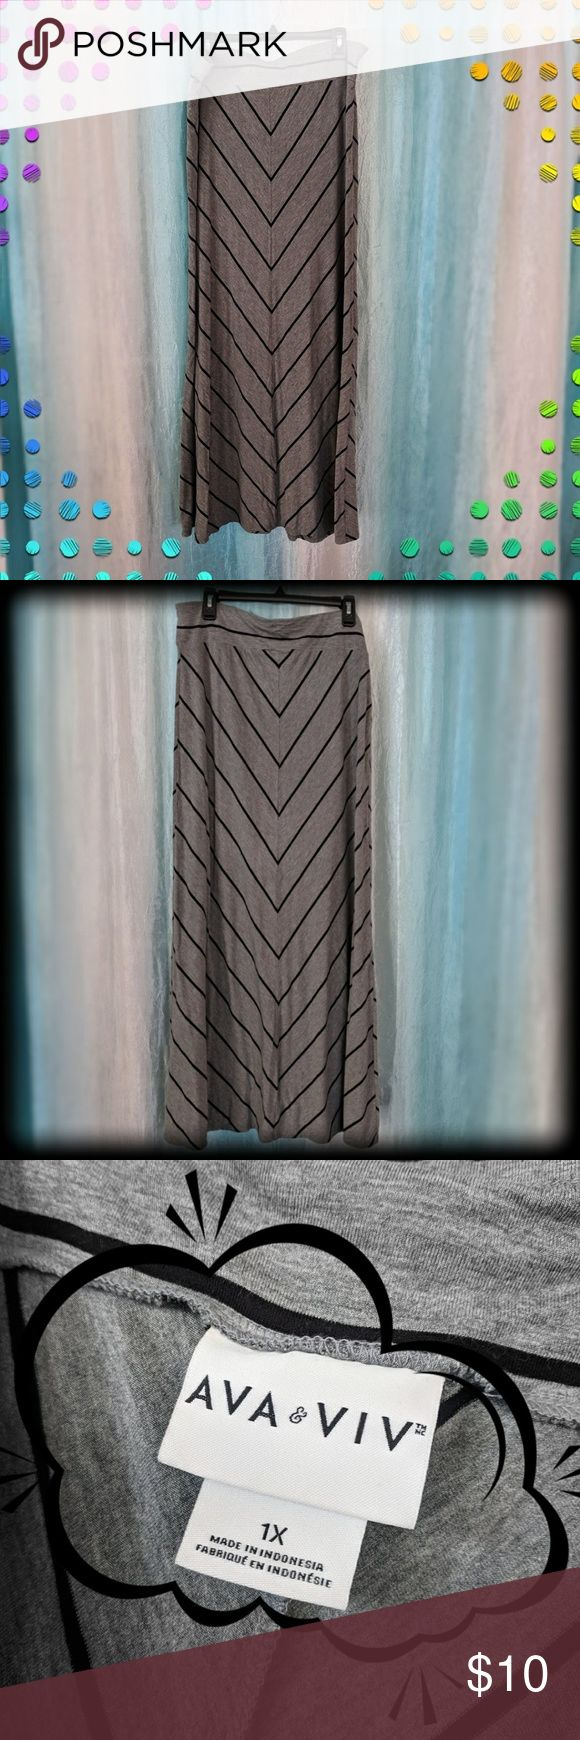 Ava Viv Chevron Maxi Skirt Blk/Grey 1X Maxi skirts are incredibly comfortable, like this A-line maxi from AVA VIV in Grey with Black Chevron stripes and a fabric covered elastic waist band. Depending on height, it falls to the top of the foot or at the ankles. It is previously loved, gently worn and in great shape. There is light pulling in a couple parts of the waist band fabric where it appears to have hung from a hangar.  Please ask questions! Smoke free & dog friendly home. Ava & Viv…